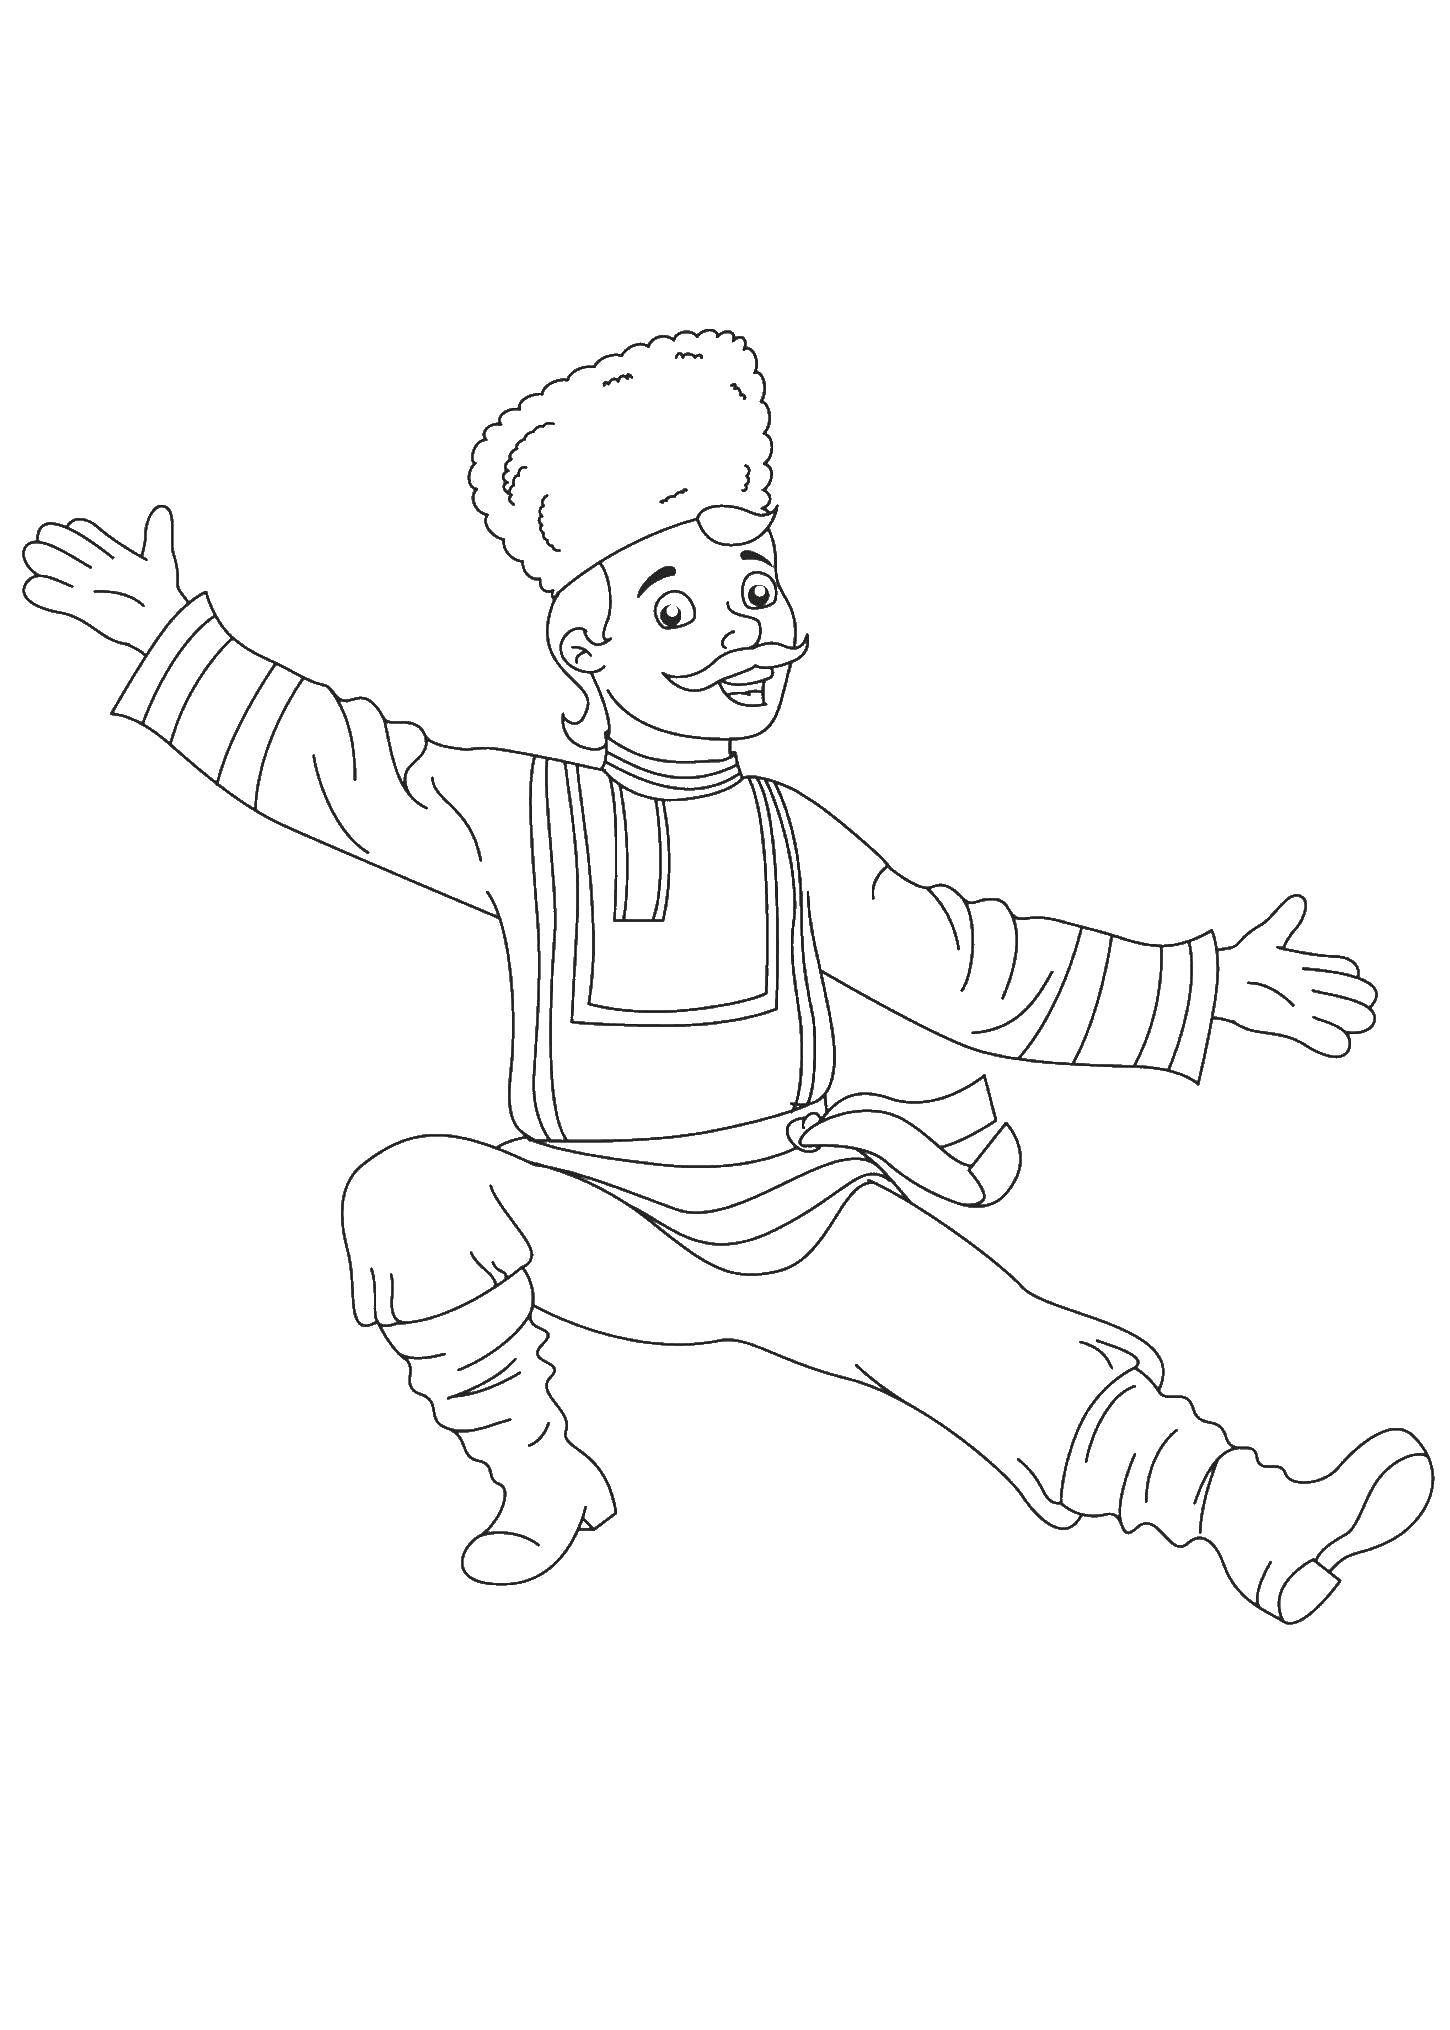 Online Coloring Pages Coloring Page Folk Dancer Russia Coloring Pages For Kids